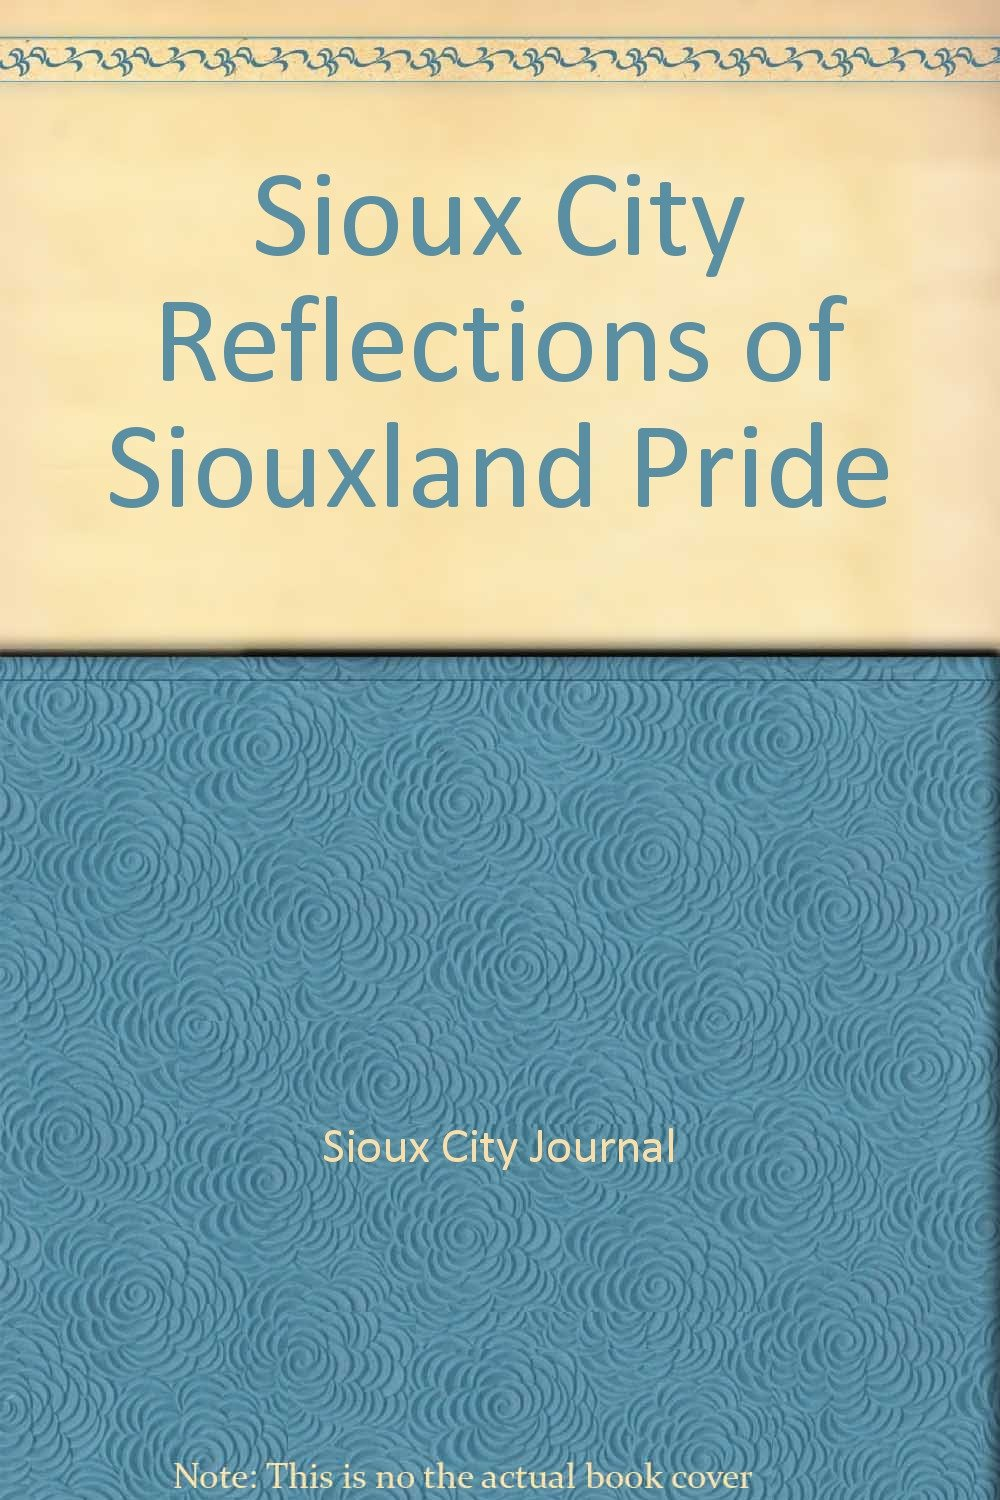 Sioux City Reflections of Siouxland Pride-Click the link below for more information about this book